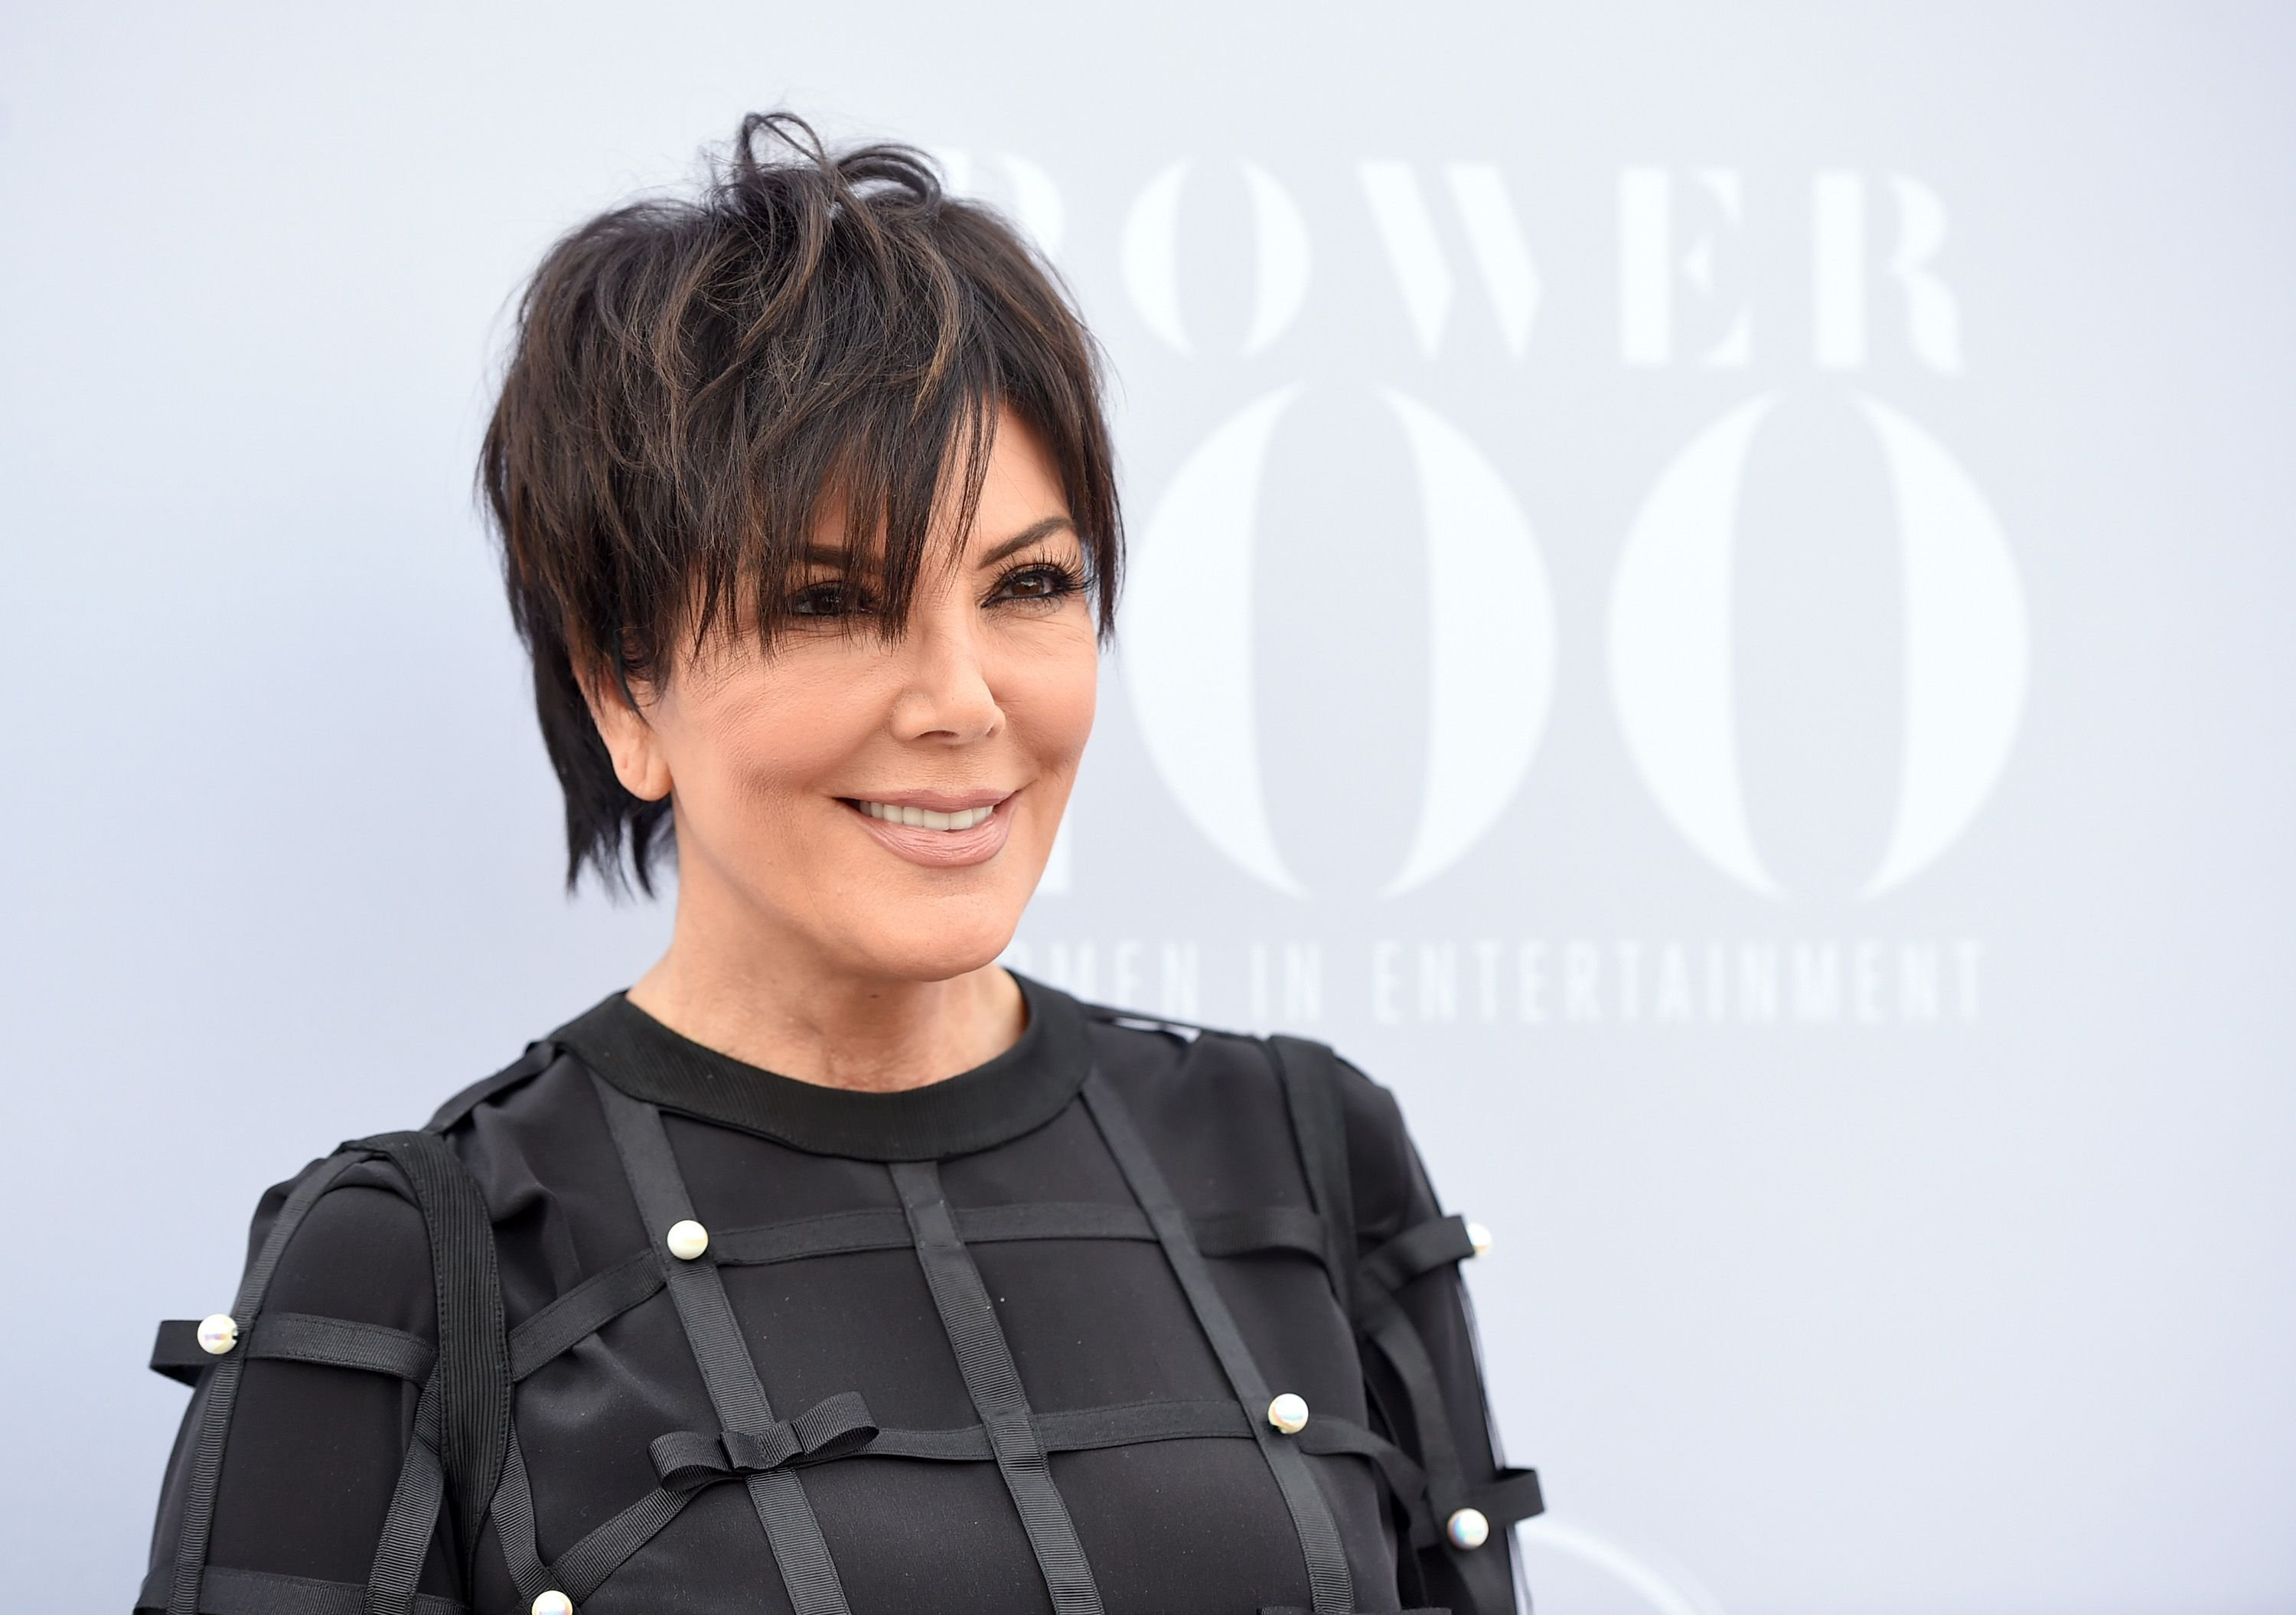 Kris Jenner at the 24th annual Women in Entertainment Breakfast hosted by The Hollywood Reporter at Milk Studios on December 9, 2015. | Photo: Getty Images